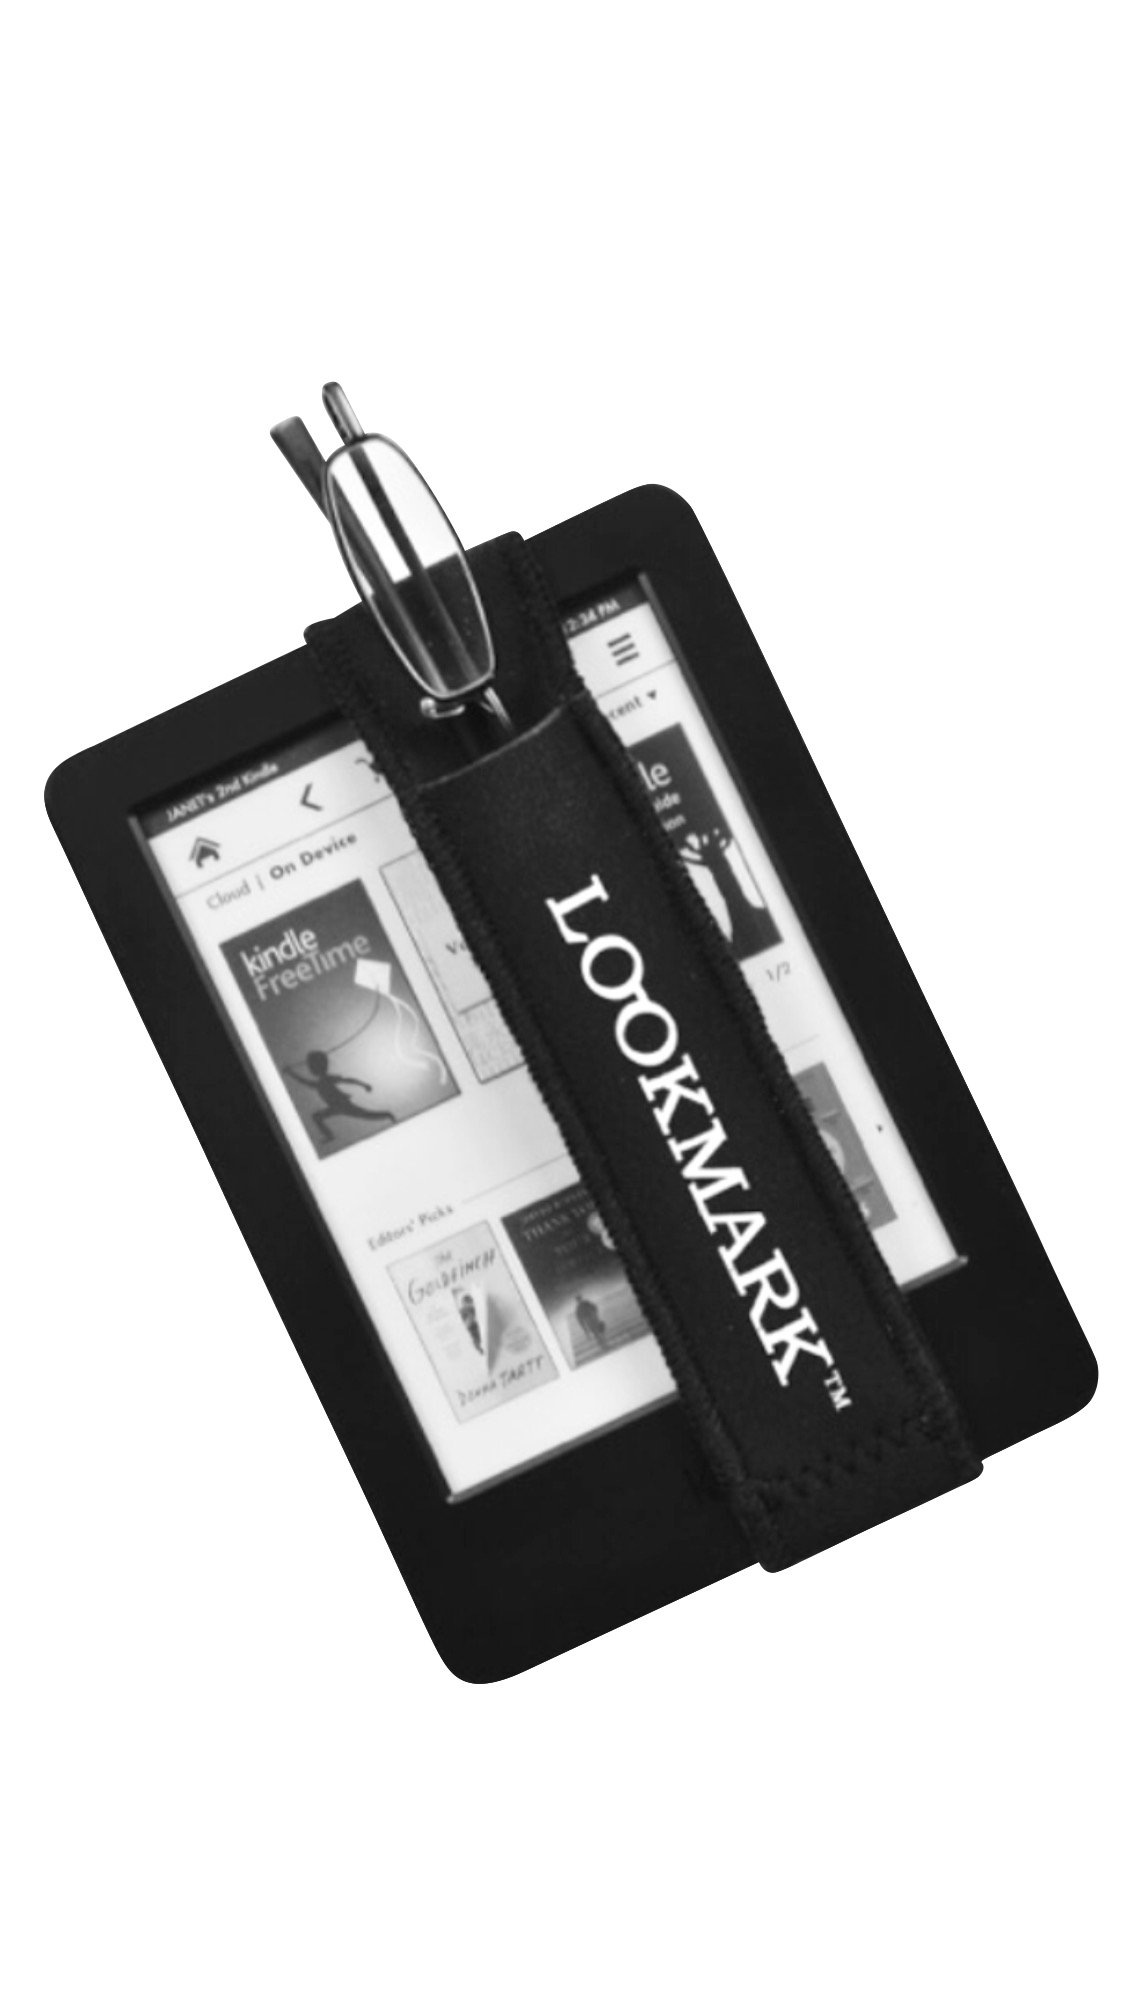 Tablet Accessory-Reading Glasses with Holder Band to Fit Tablet In Powers +1.00, +1.50, +2.00 and +2.50 (2.50)